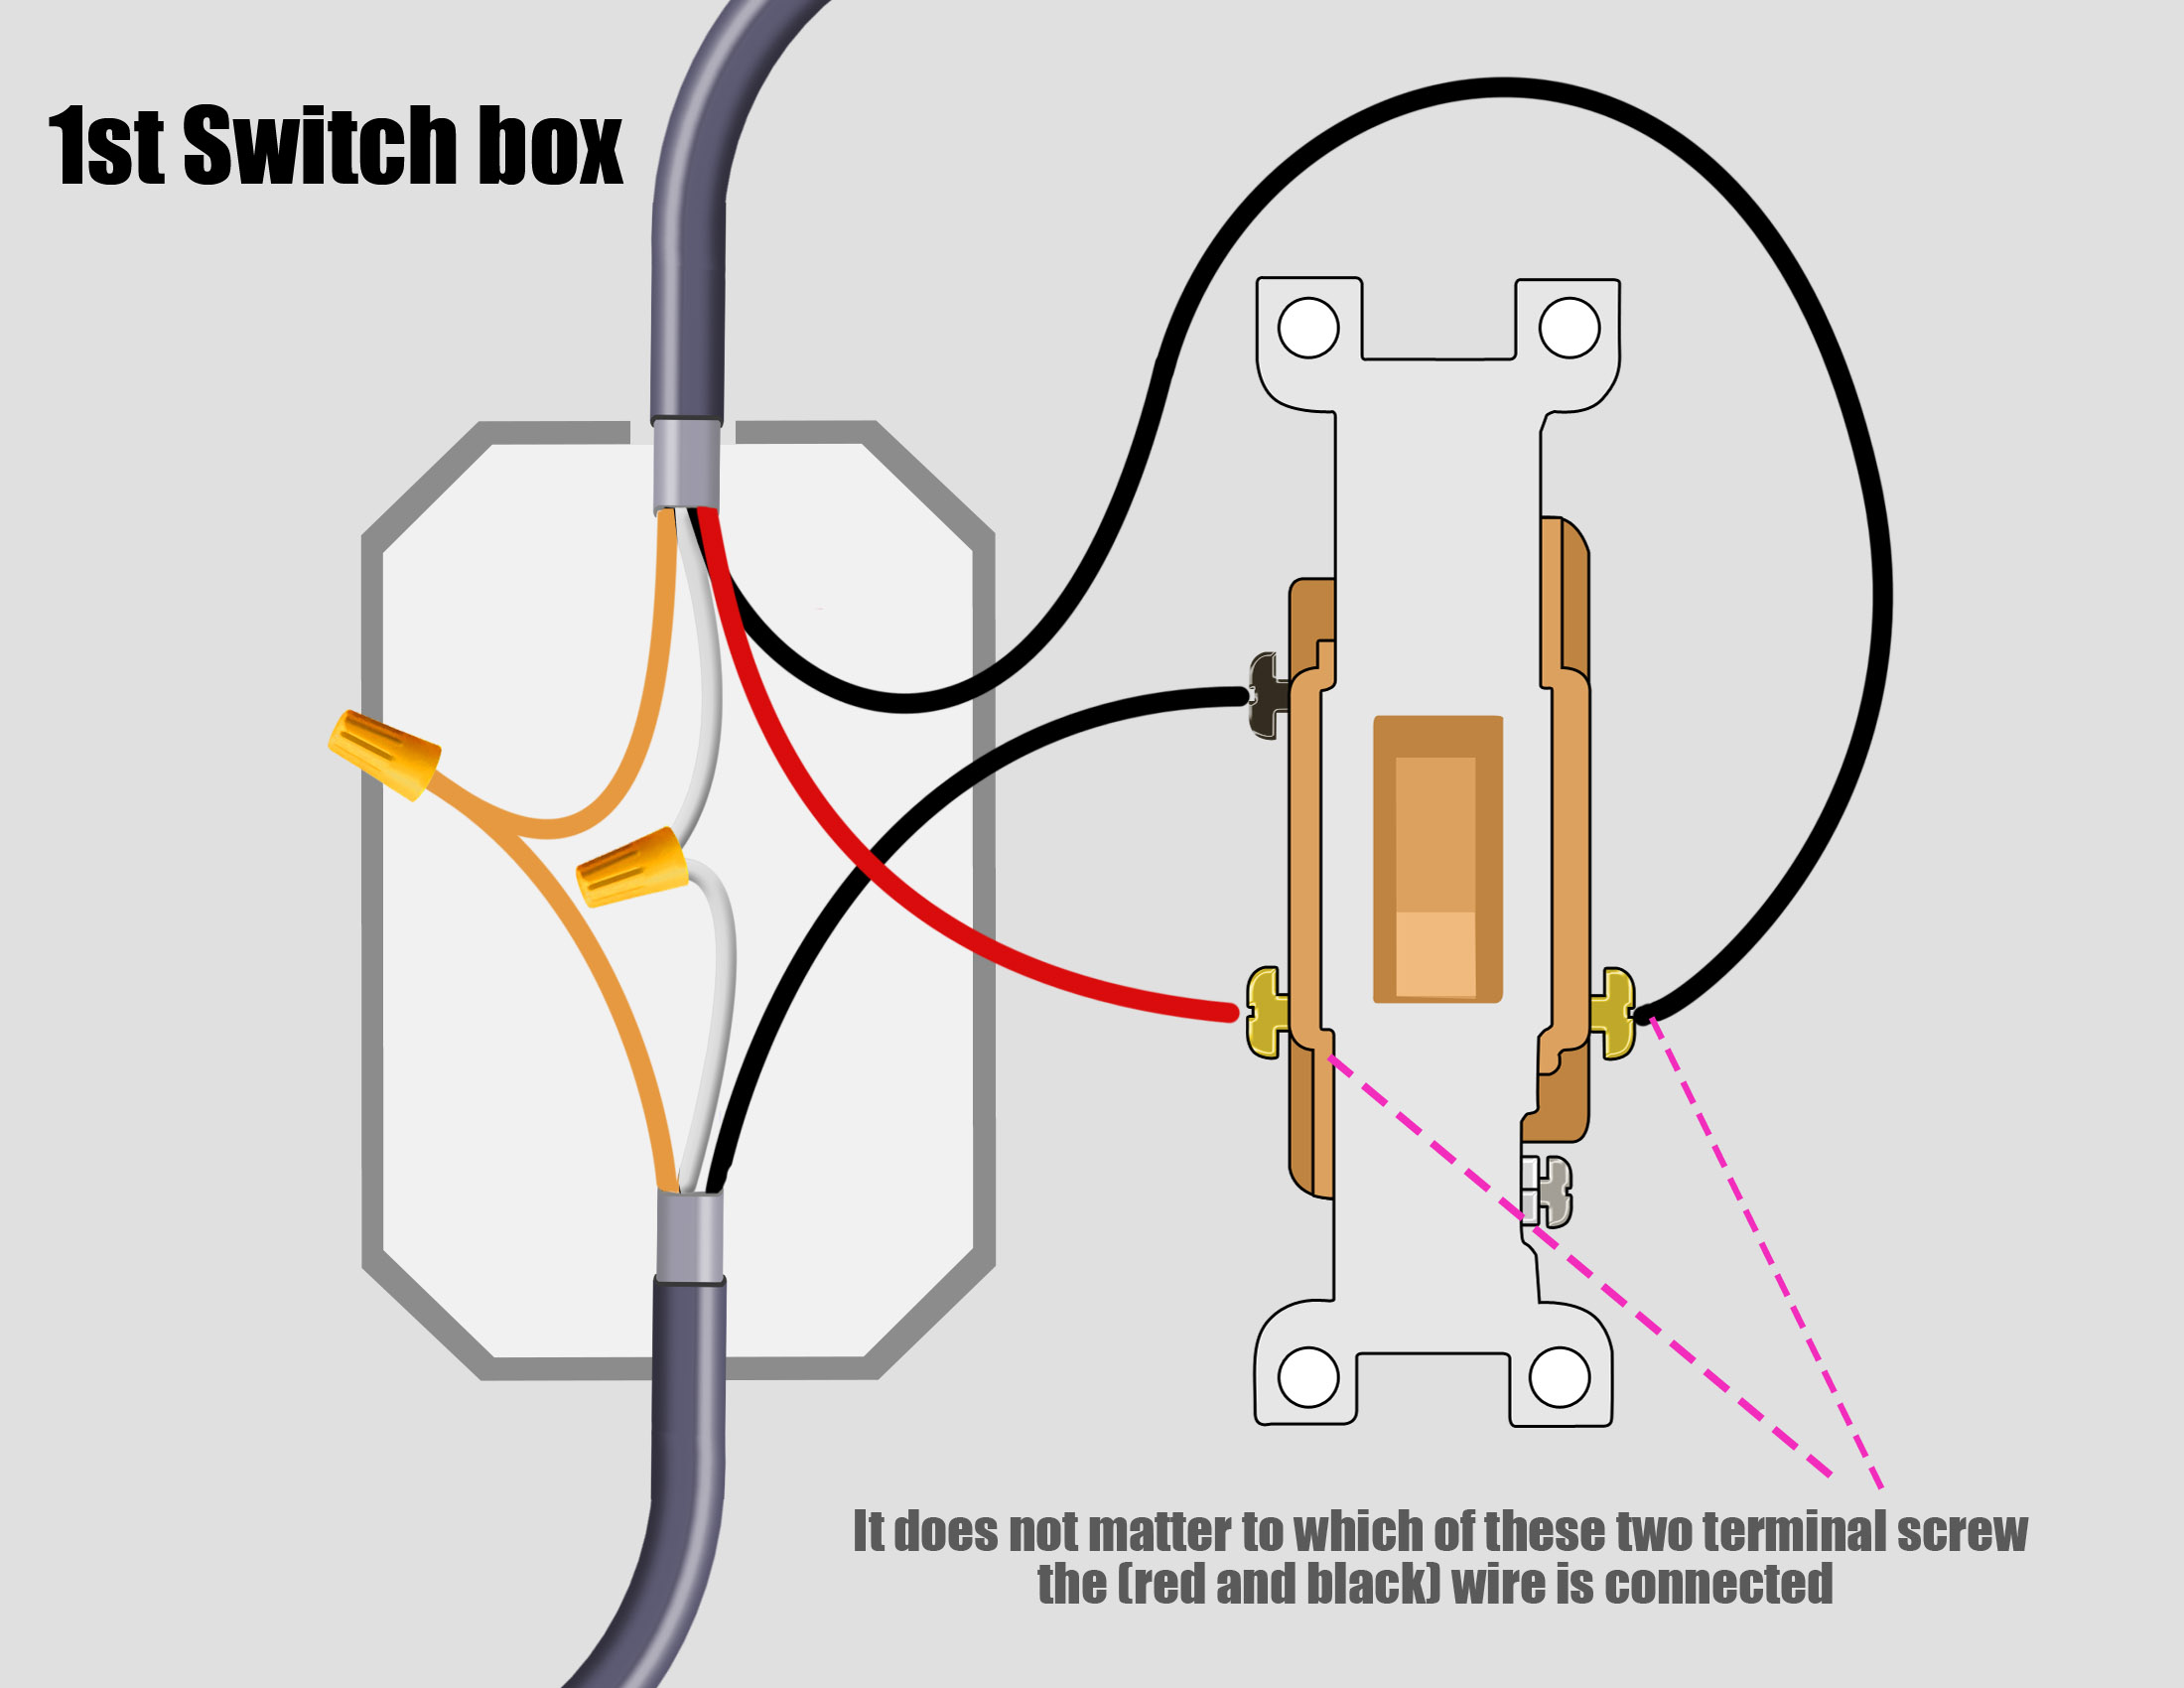 3 way wiring diagrams waterfall development diagram ceiling light on switch will not shut off